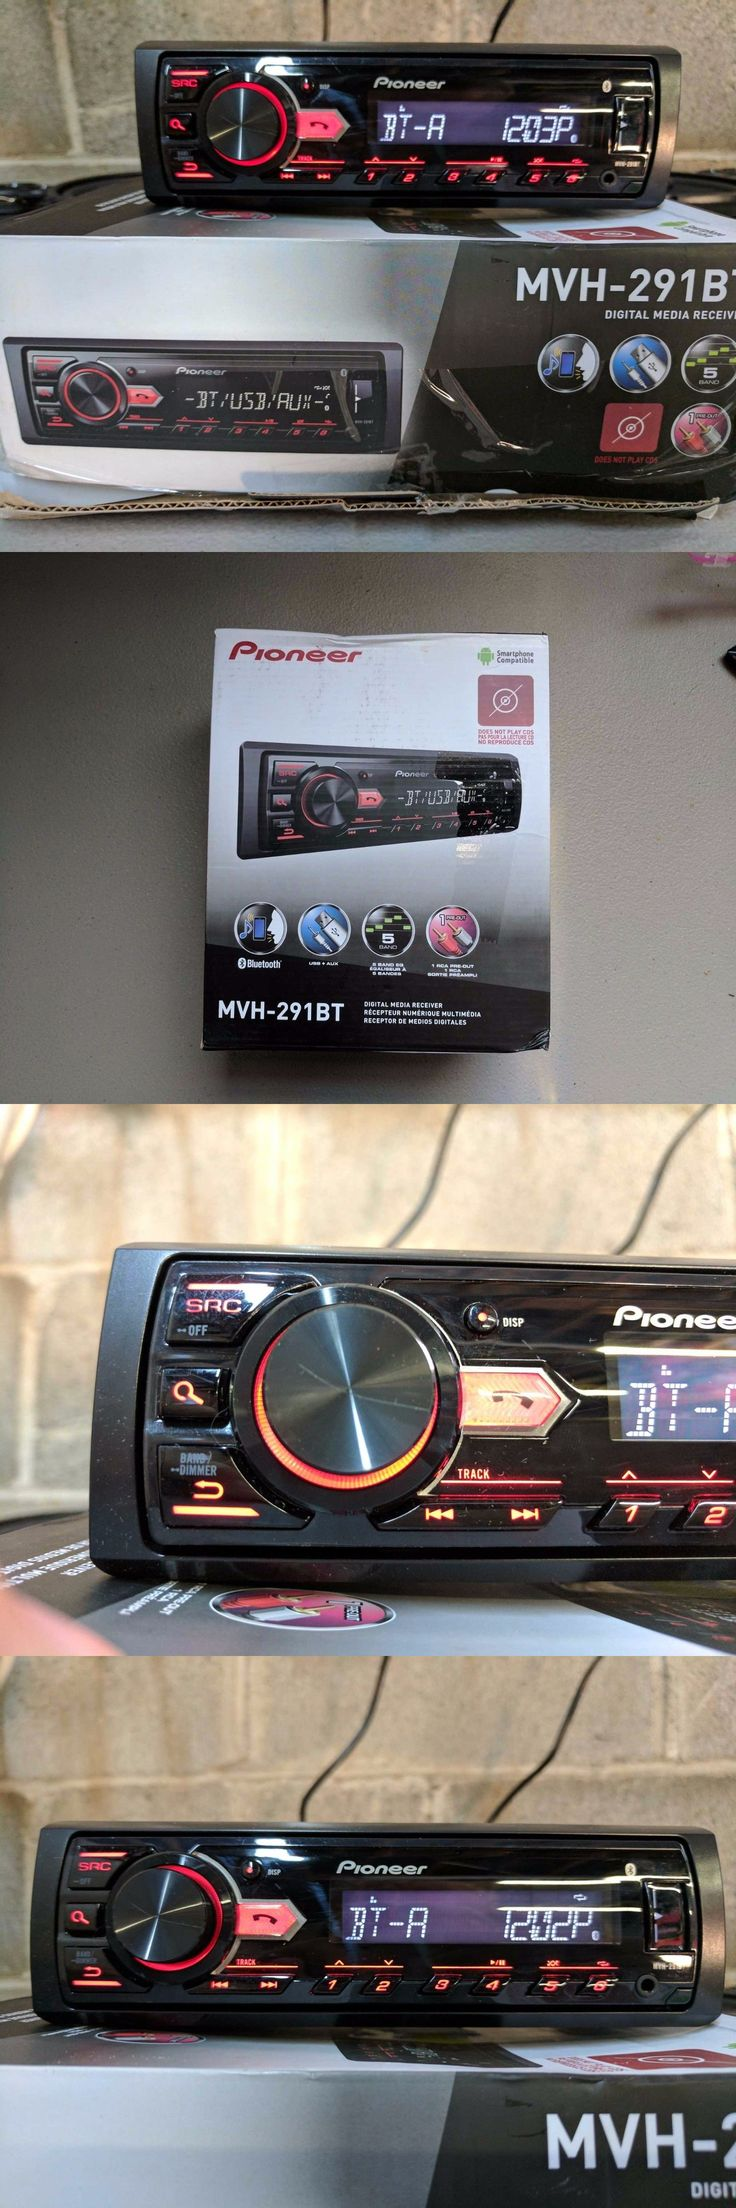 Car Audio In-Dash Units: Pioneer Mvh-291Bt Car Stereo Media Player Bluetooth -> BUY IT NOW ONLY: $49.99 on eBay!